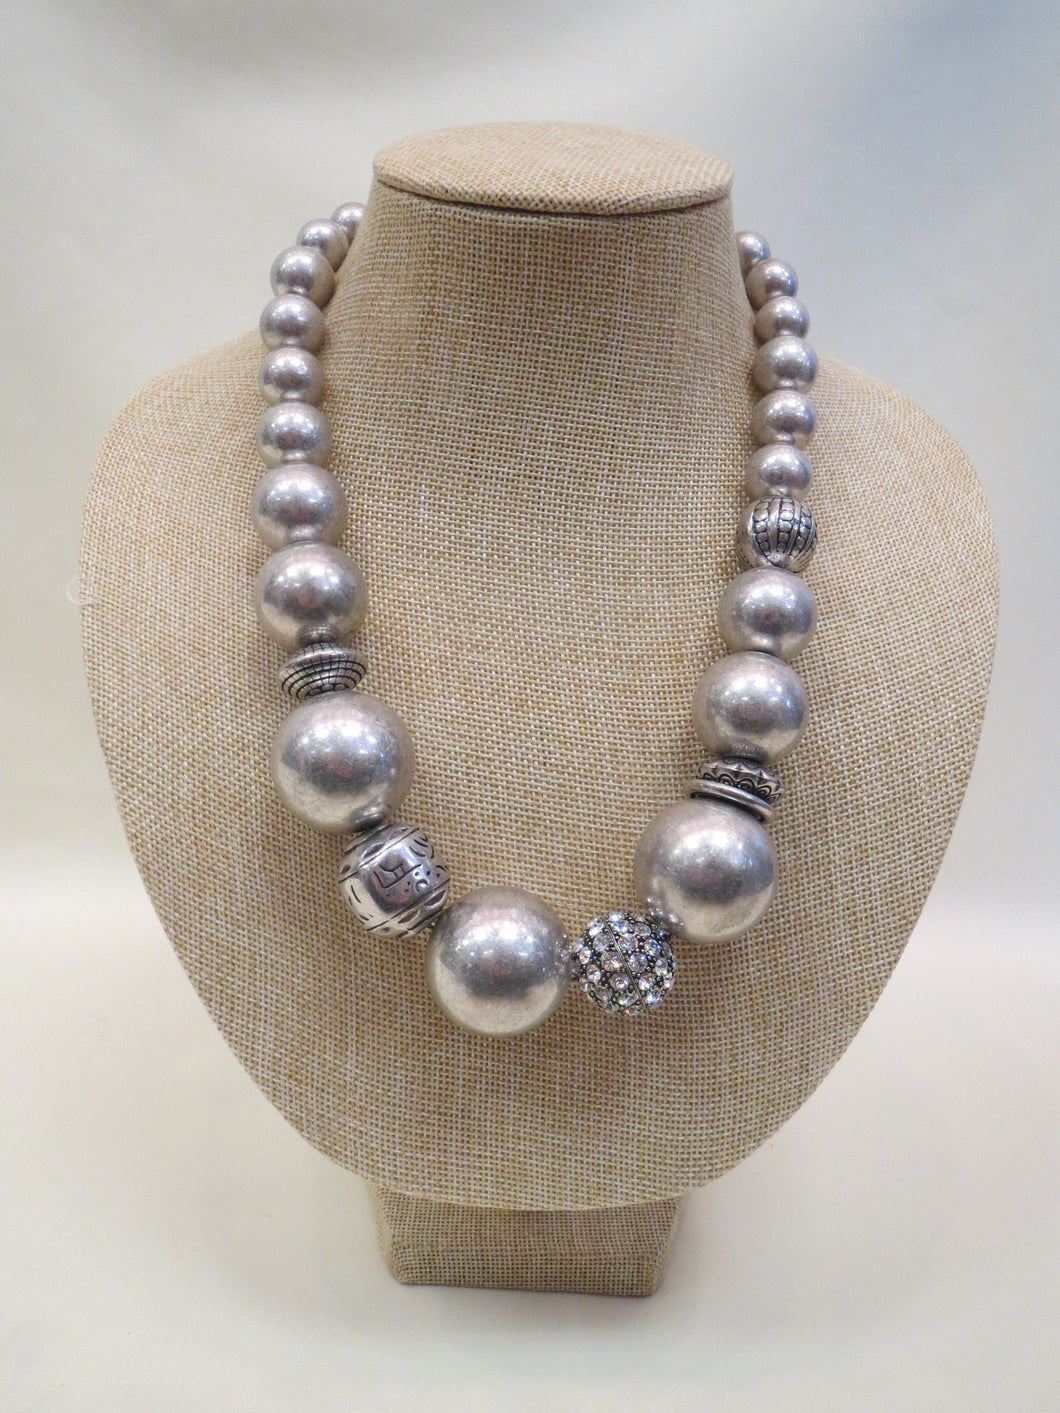 ADO Silver Ball Necklace with Rhinestones | All Dec'd Out